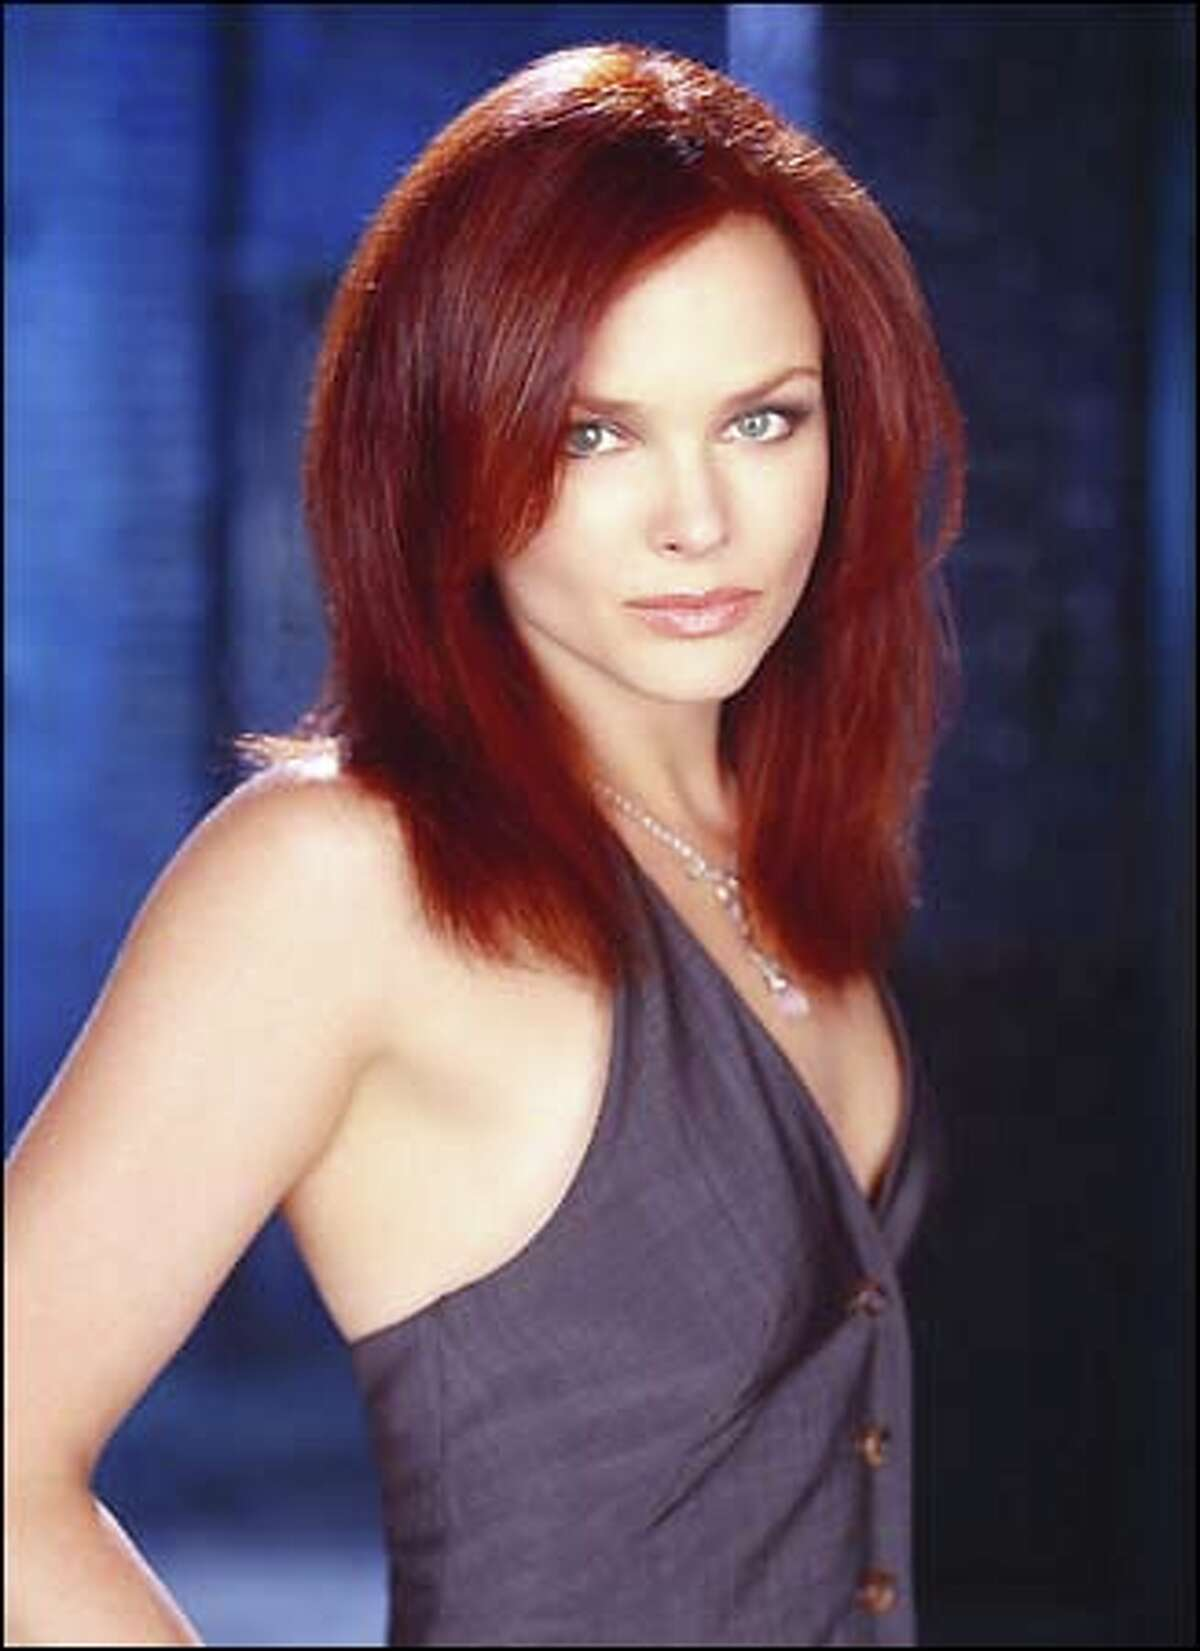 Dina Meyer plays Barbara Gordon, formerly Batgirl before the Joker left her paralyzed, sparking her second vigilante career as the mysterious Oracle.